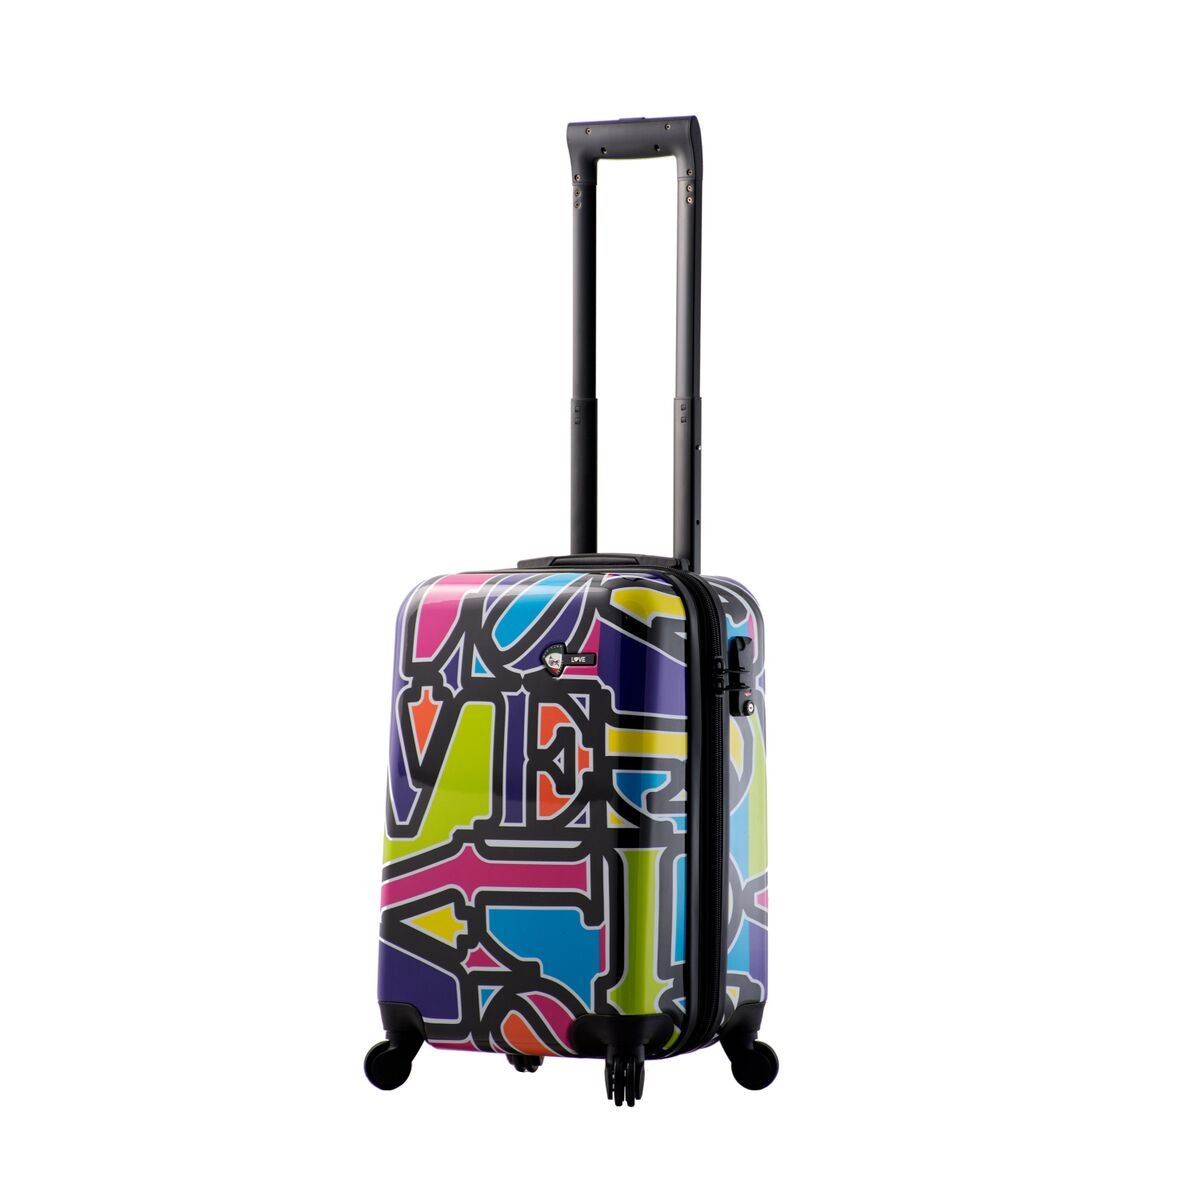 Mia Toro Love Collection Hard Side Spinner Luggage Carry-on, Lcp, Love Collection Purple